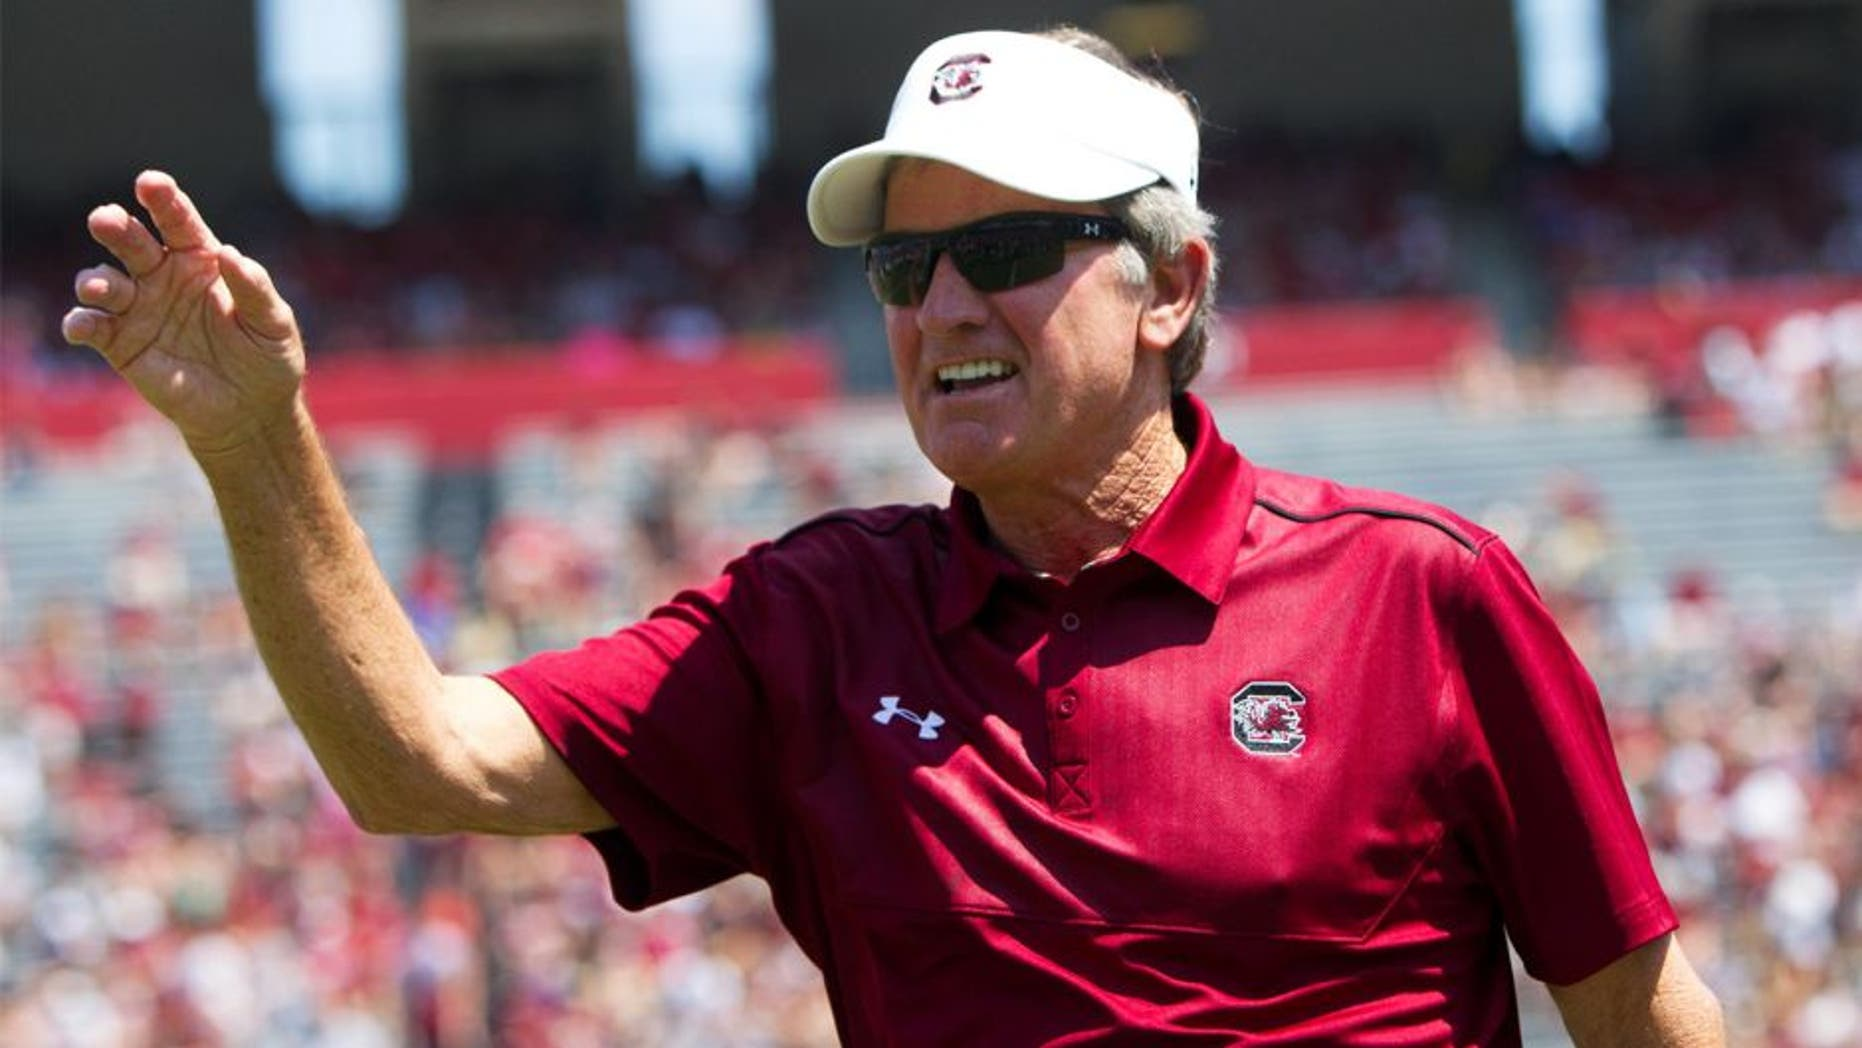 Apr 12, 2014; Columbia, SC, USA; South Carolina Gamecocks head coach Steve Spurrier during half time of the South Carolina spring game at Williams-Brice Stadium. Mandatory Credit: Joshua S. Kelly-USA TODAY Sports